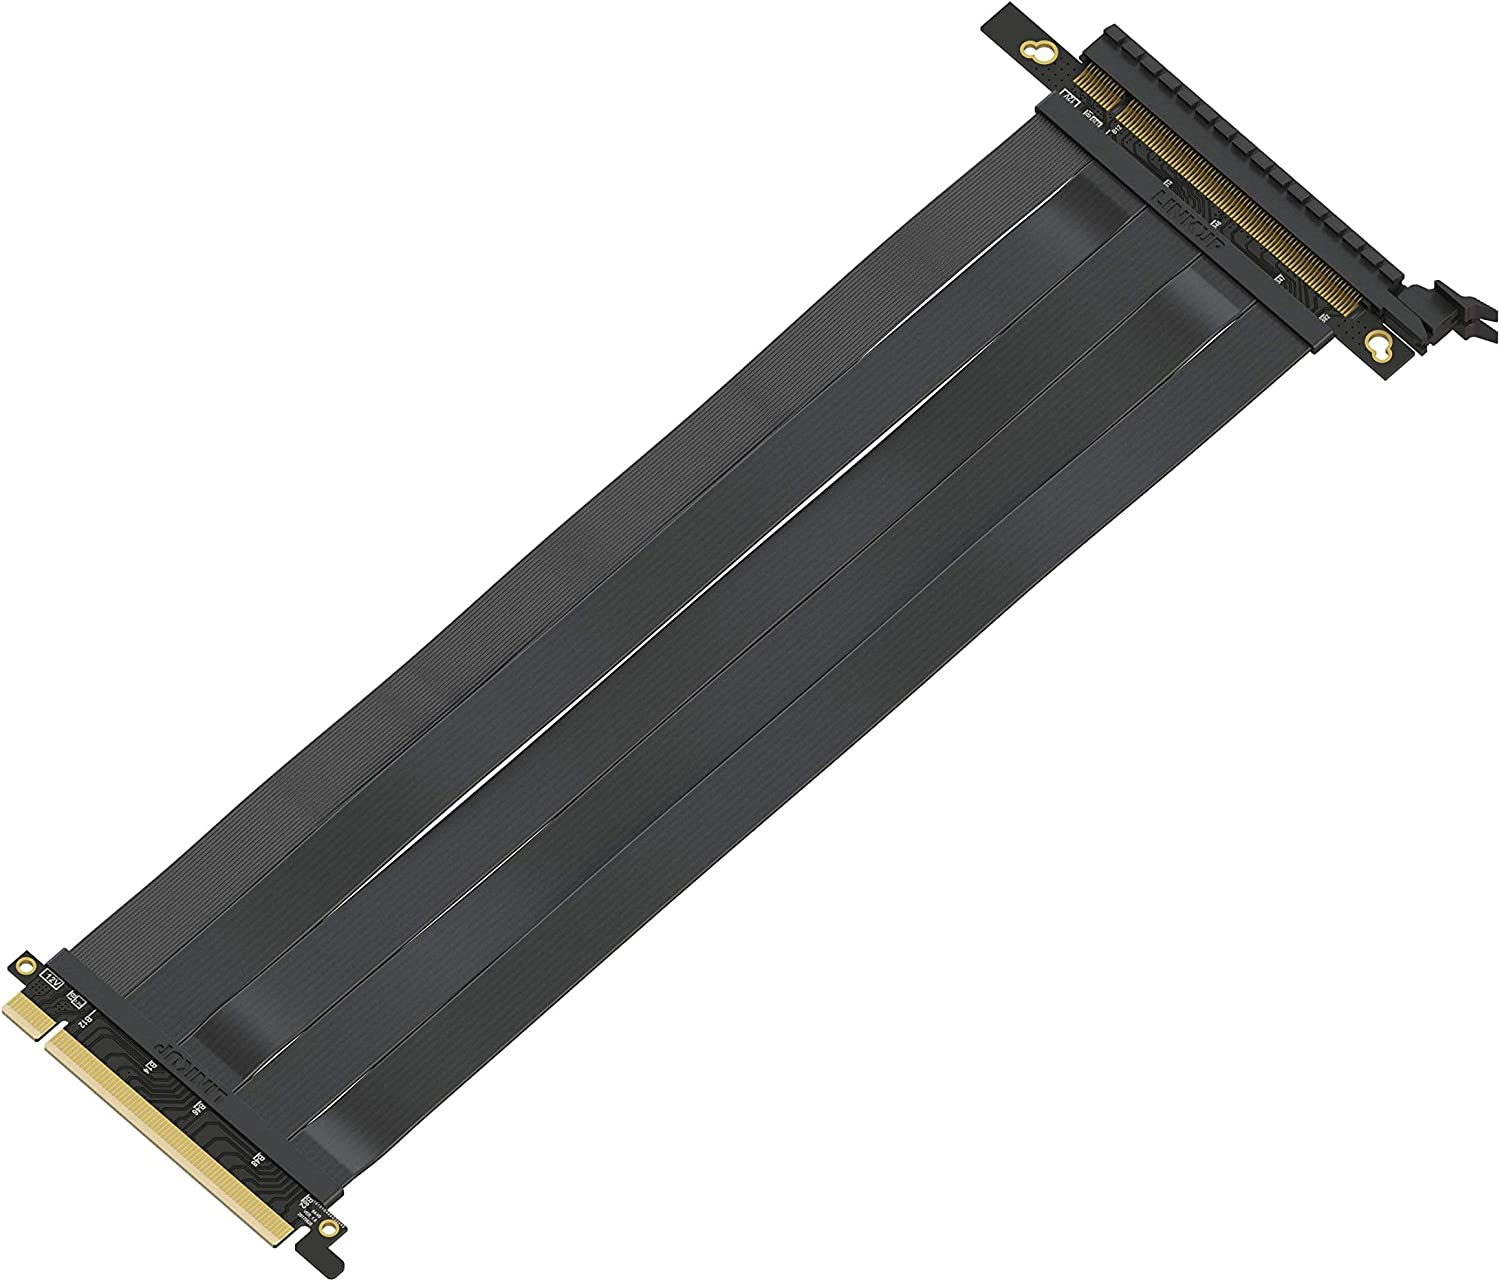 Cable Length: 30cm, Color: Down Angled Occus PCI-E Gen3.0 16x to 16x Riser Cable 10cm 20cm 30cm 40cm 50cm PCI-Express PCI-E X16 Extender Down Right Angled Elbow Design